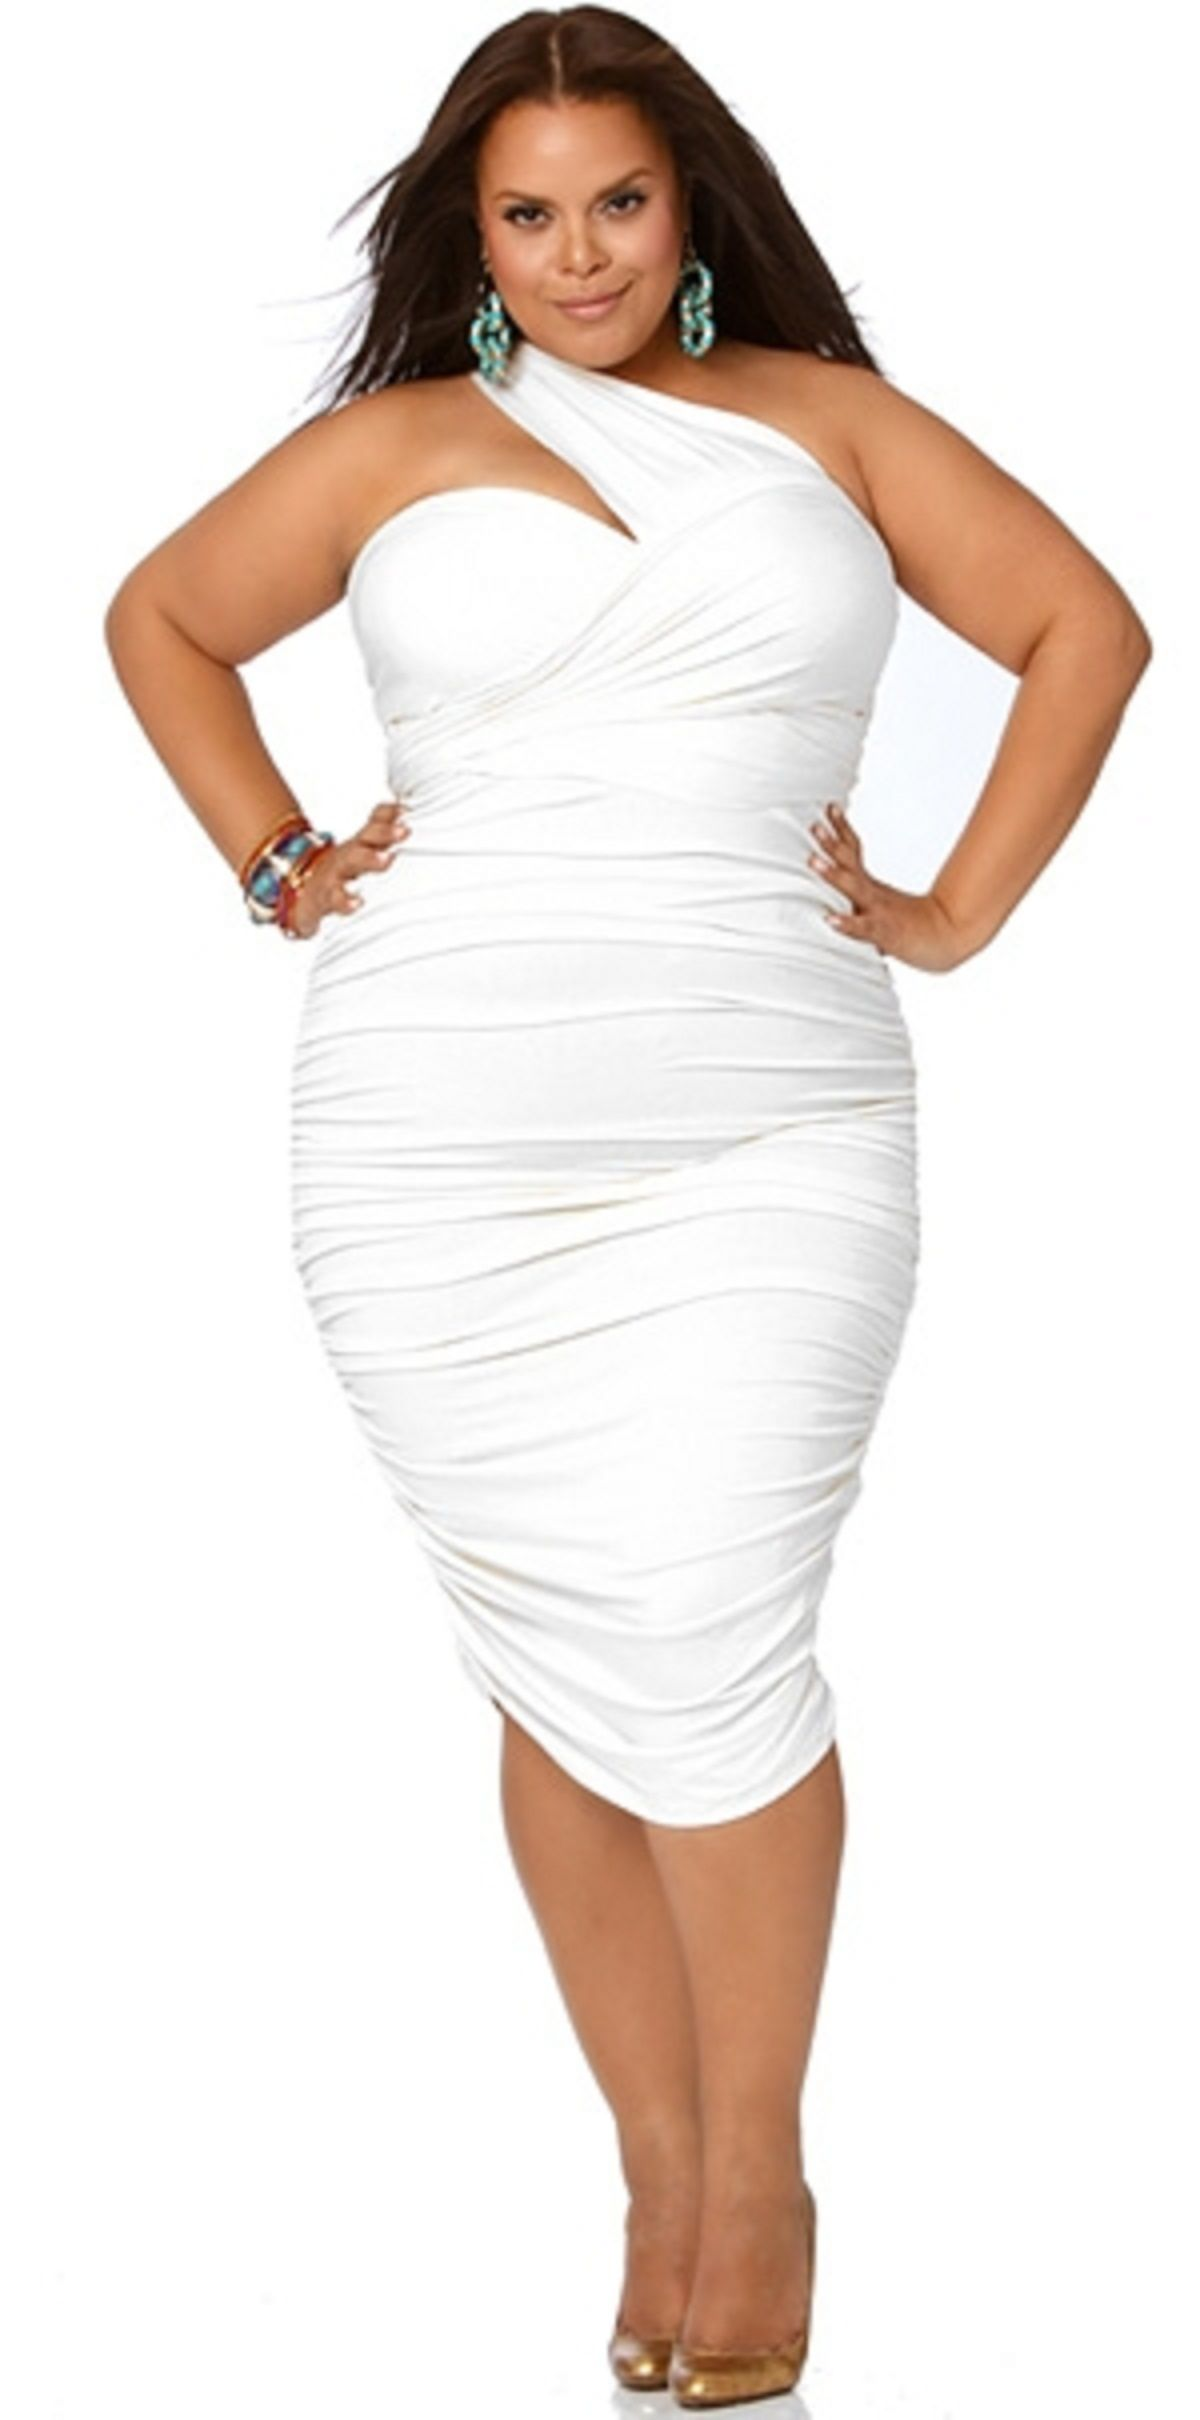 Plus Size Semi-Formal and Formal Outfit Ideas | White plus ...